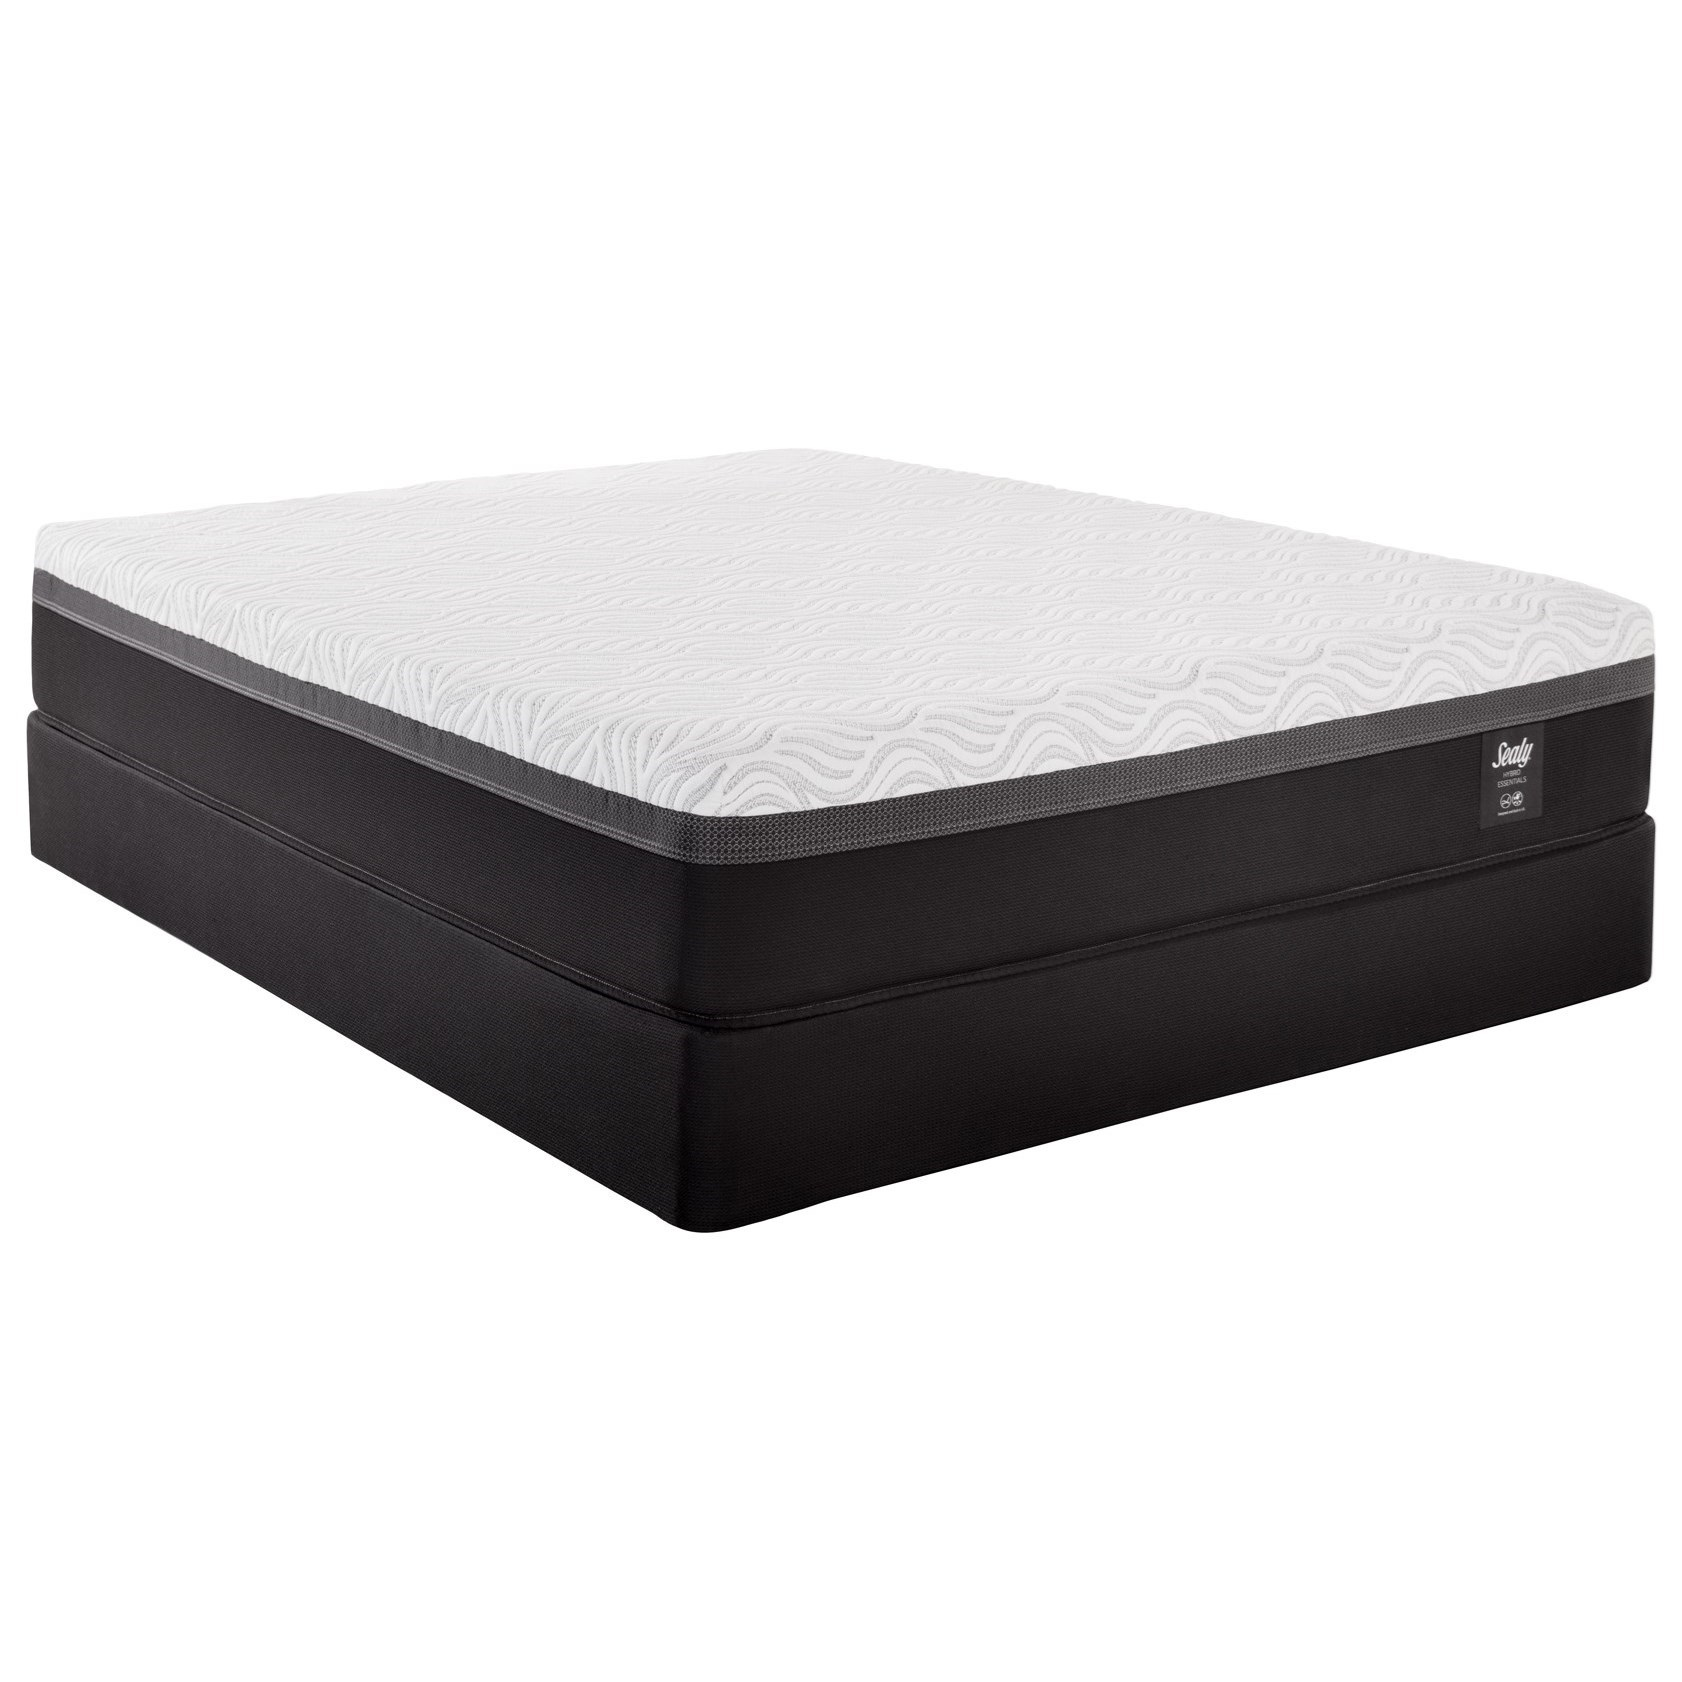 Essentials Z5 Trust II Twin Hybrid Mattress Set by Sealy at Sprintz Furniture